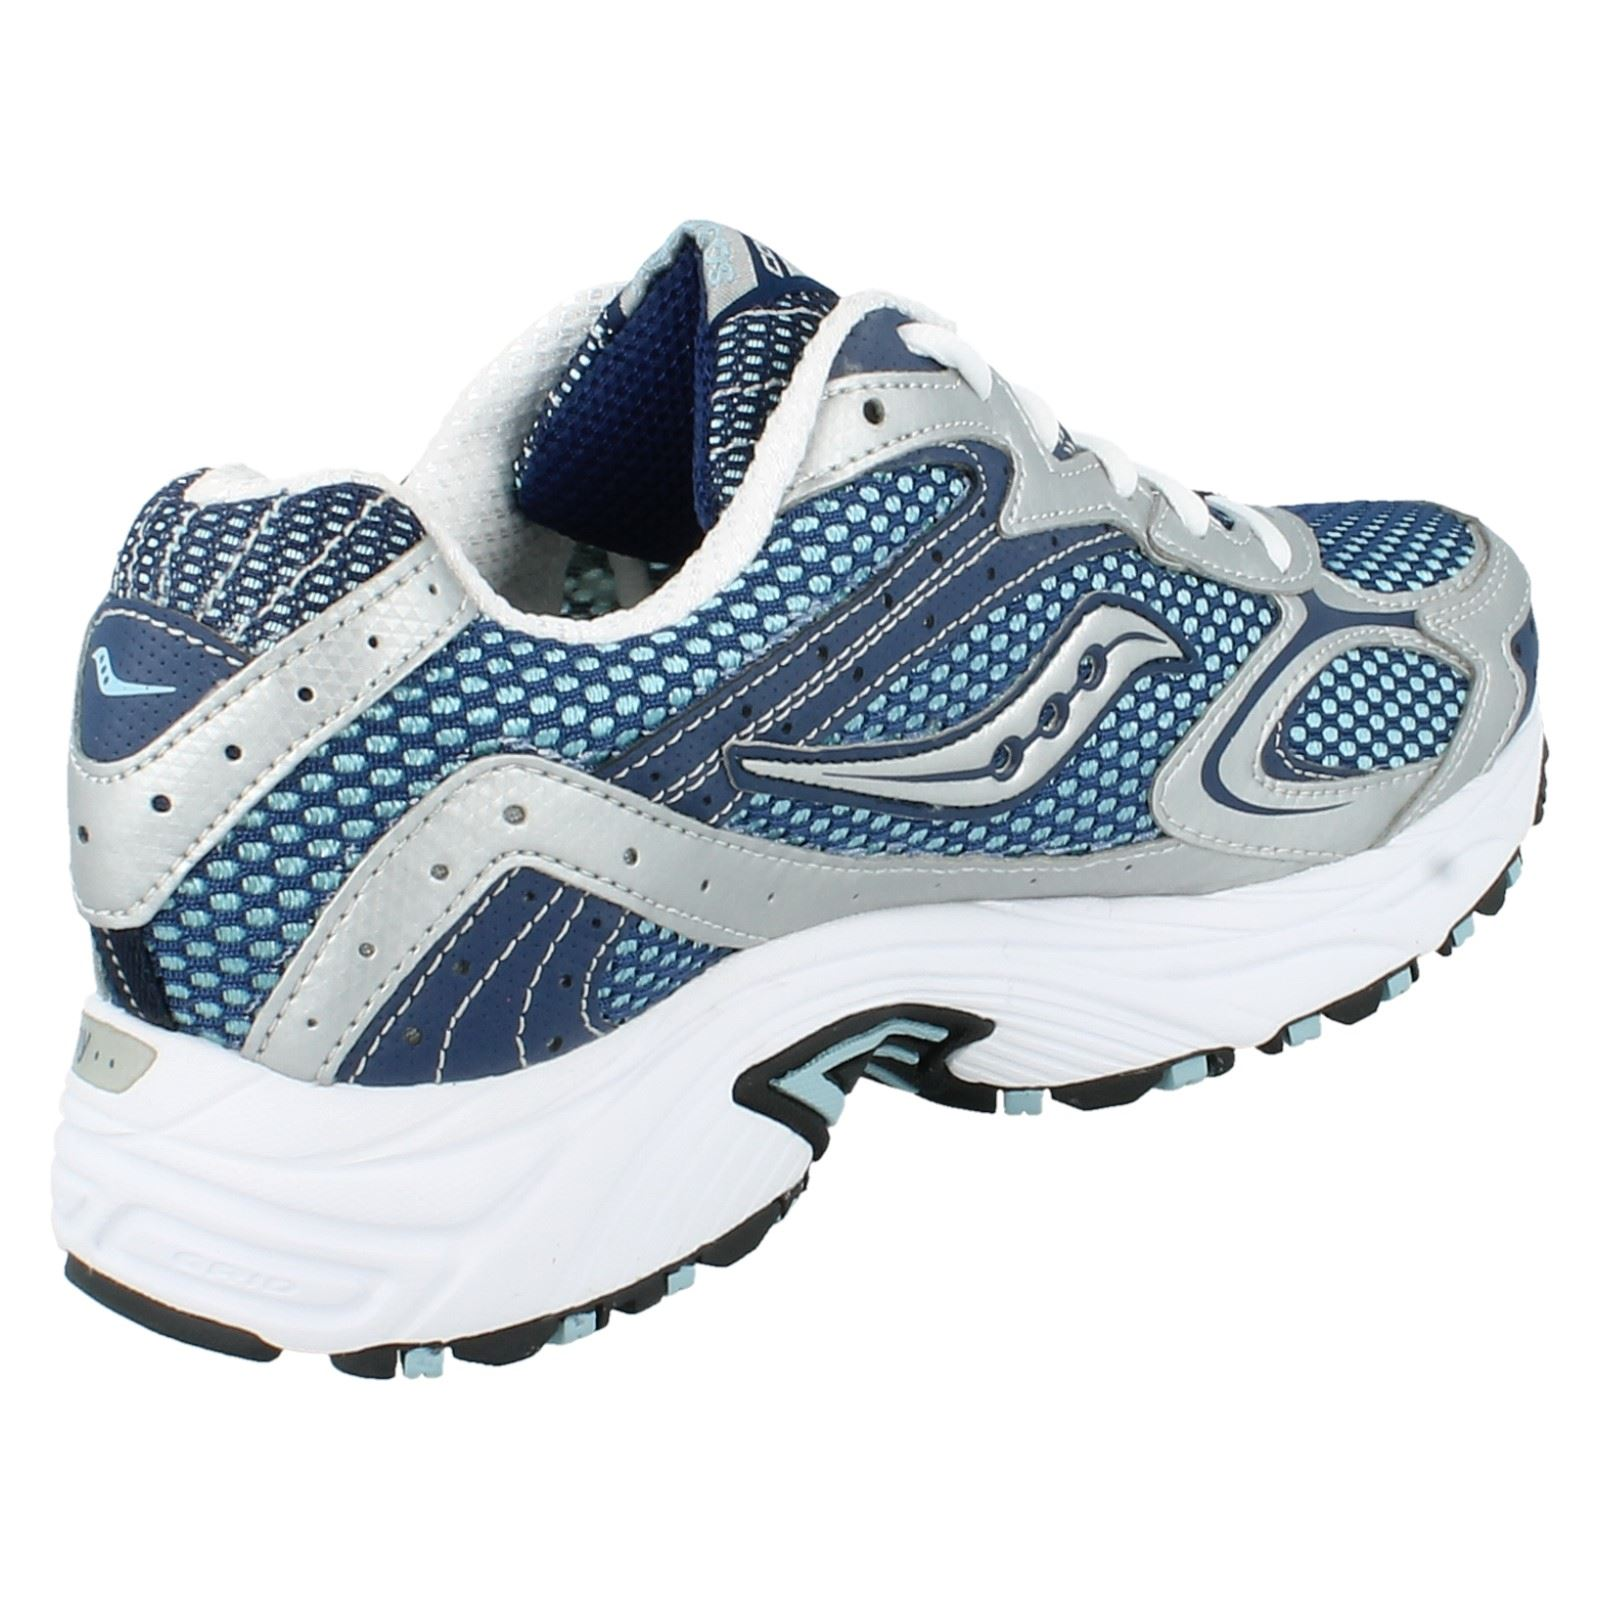 Saucony Cohesion Trail Shoes Womens Size